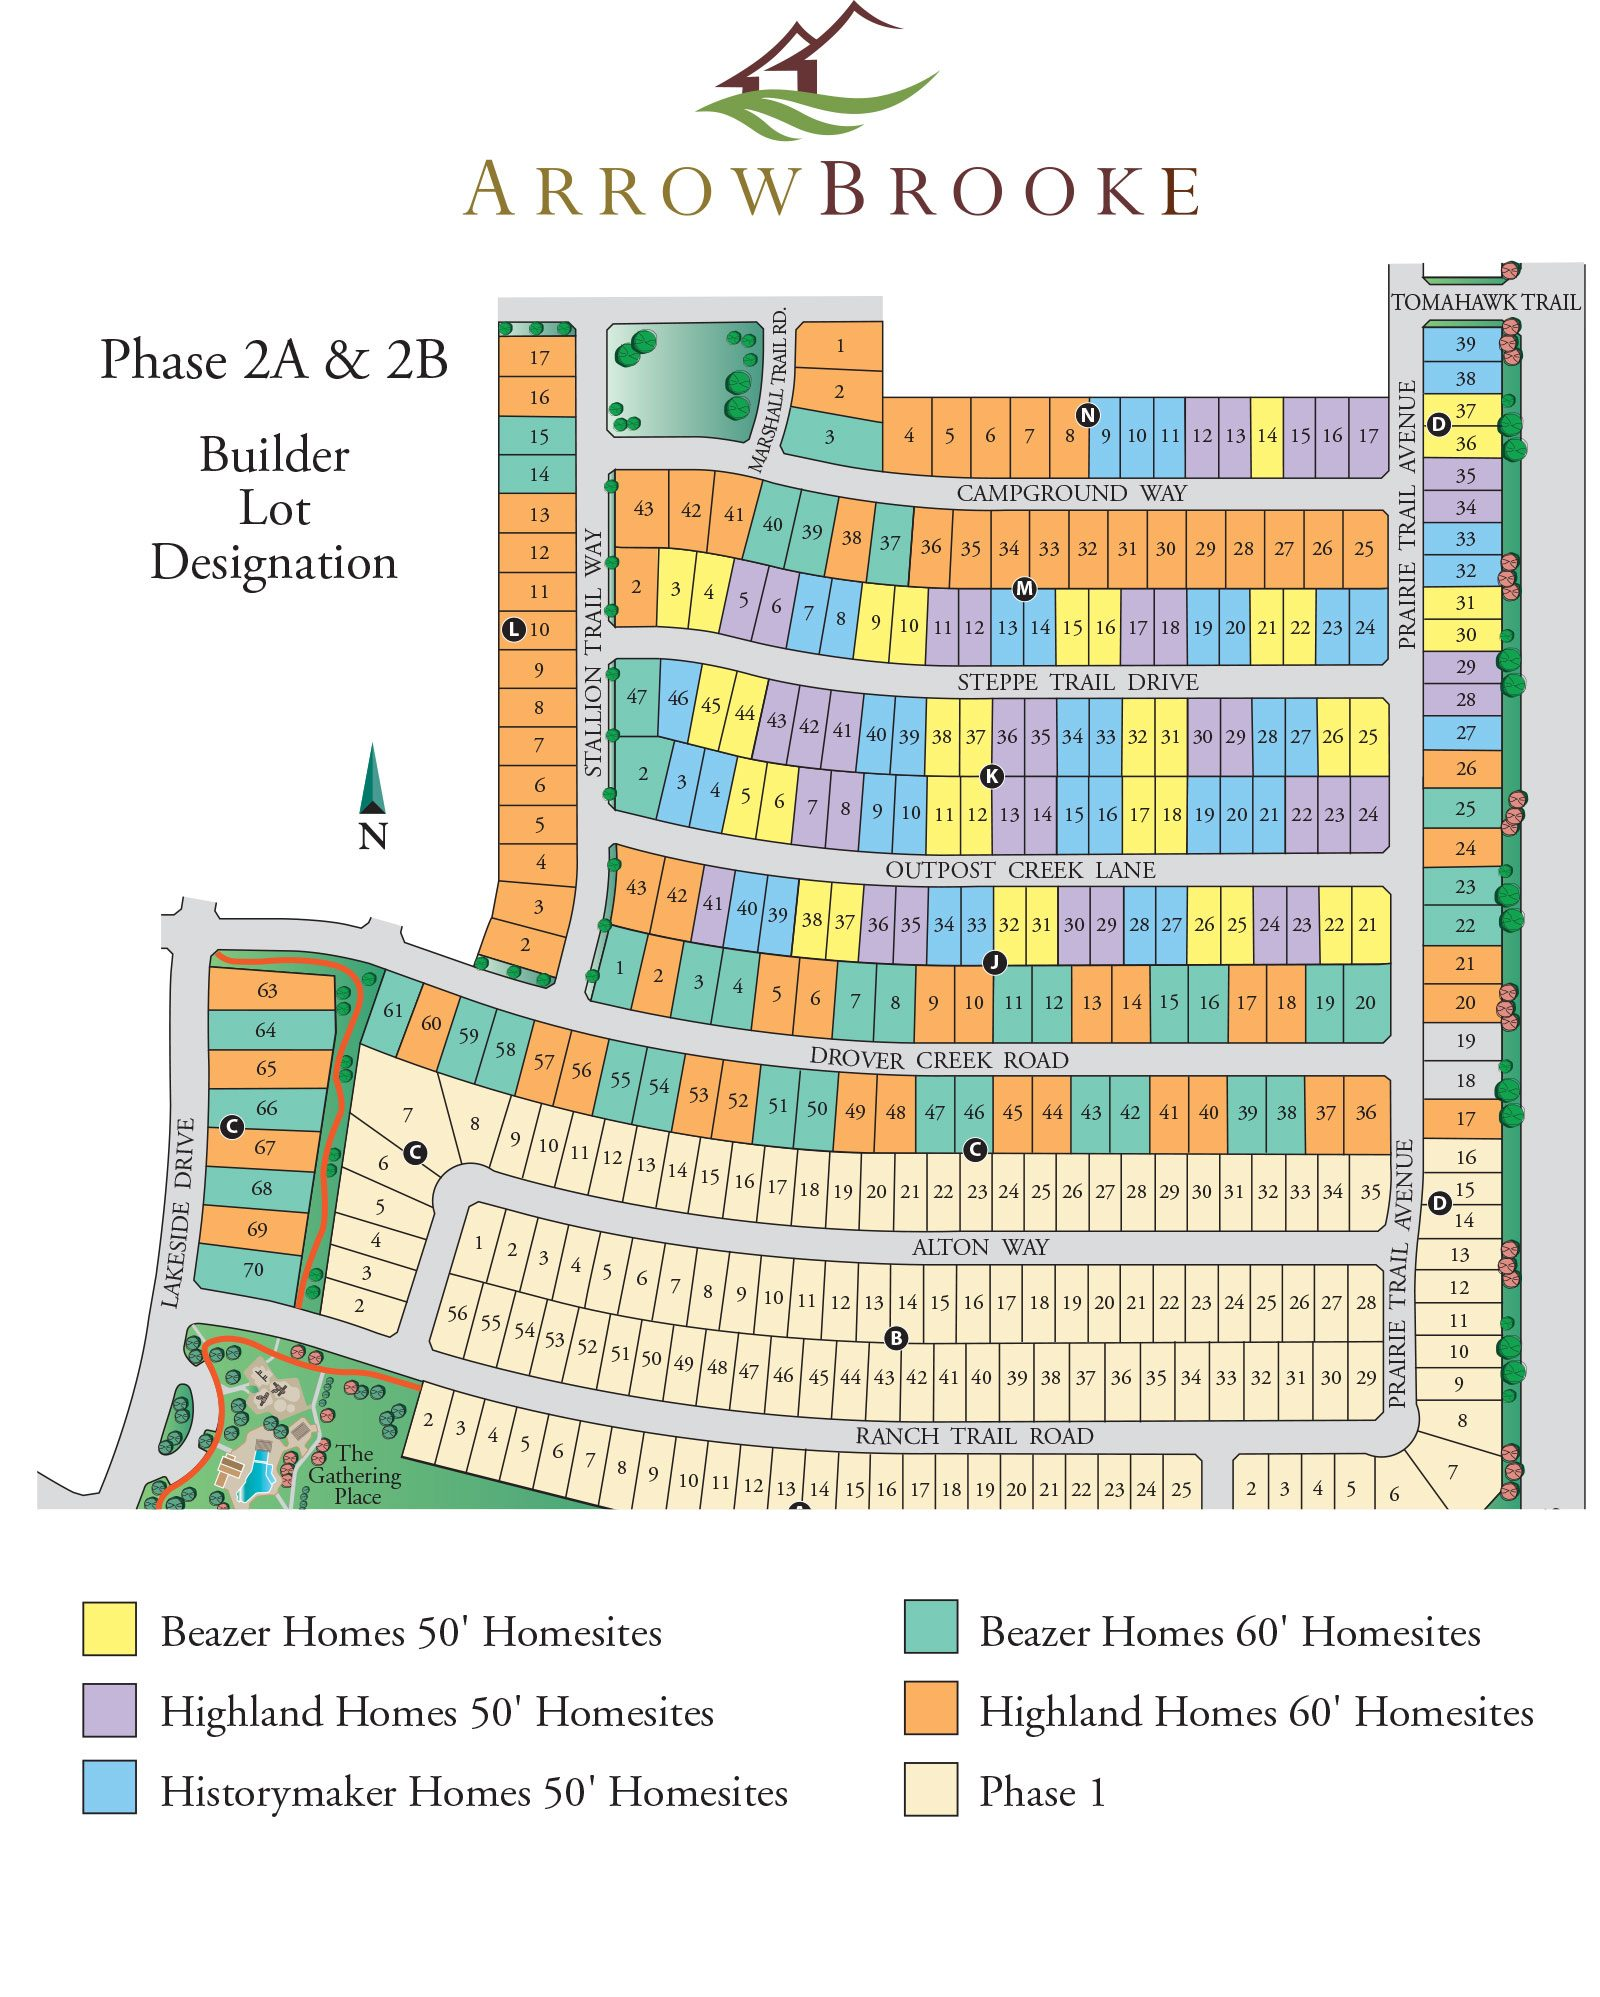 Home Finding Sites: ArrowBrooke Master Planned Community Is Calming And Welcoming